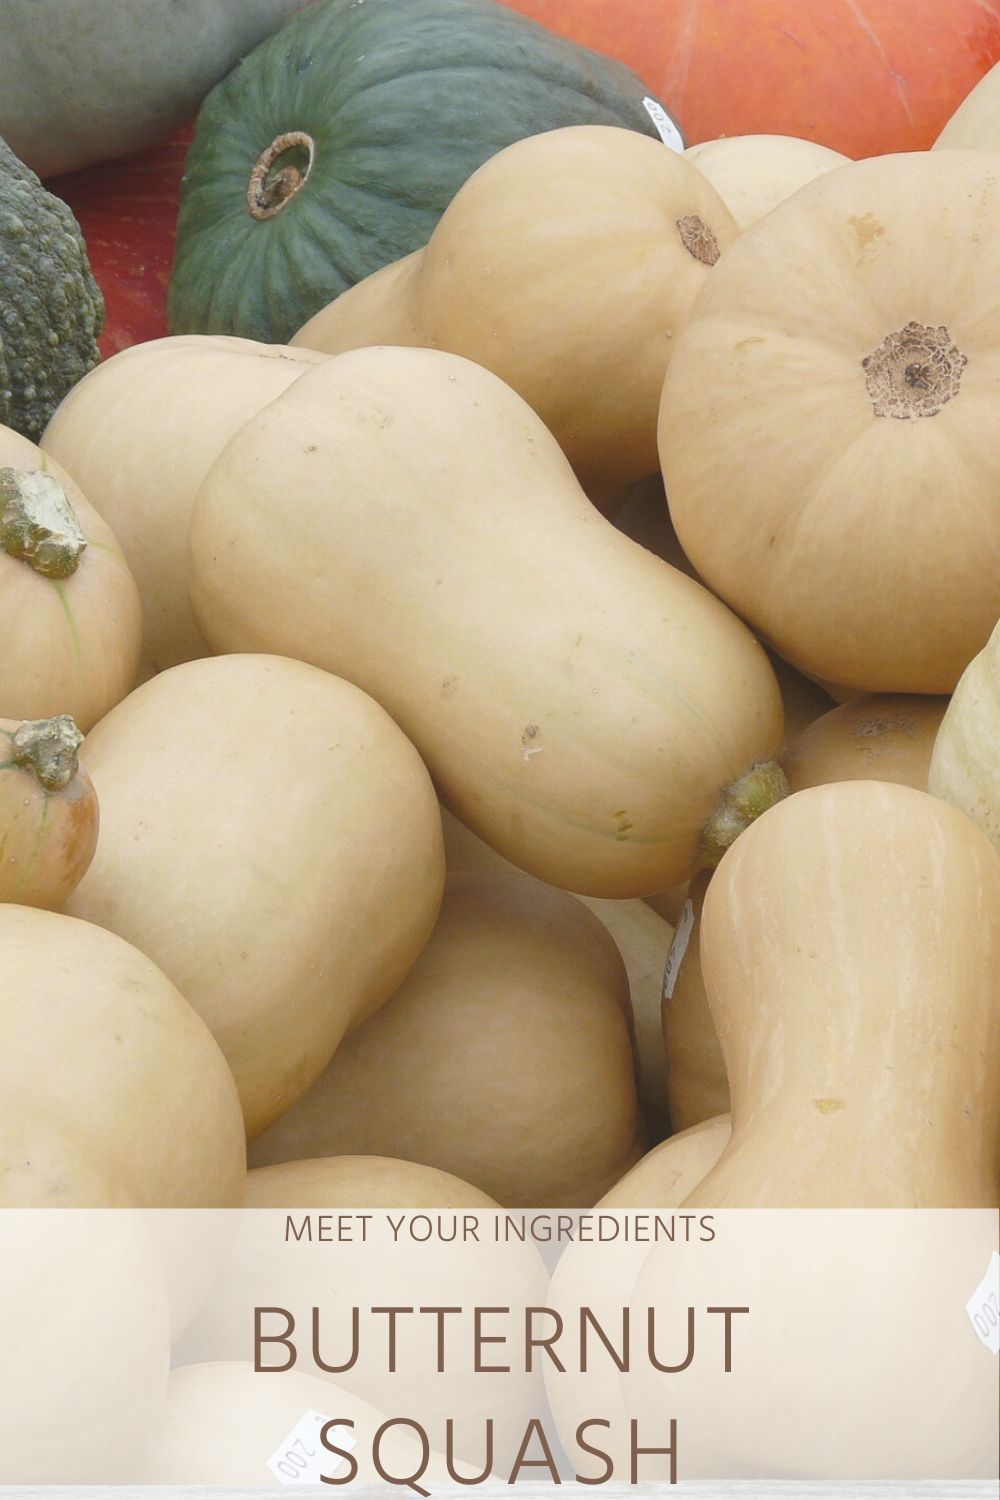 Dietitian Guide to Butternut Squash